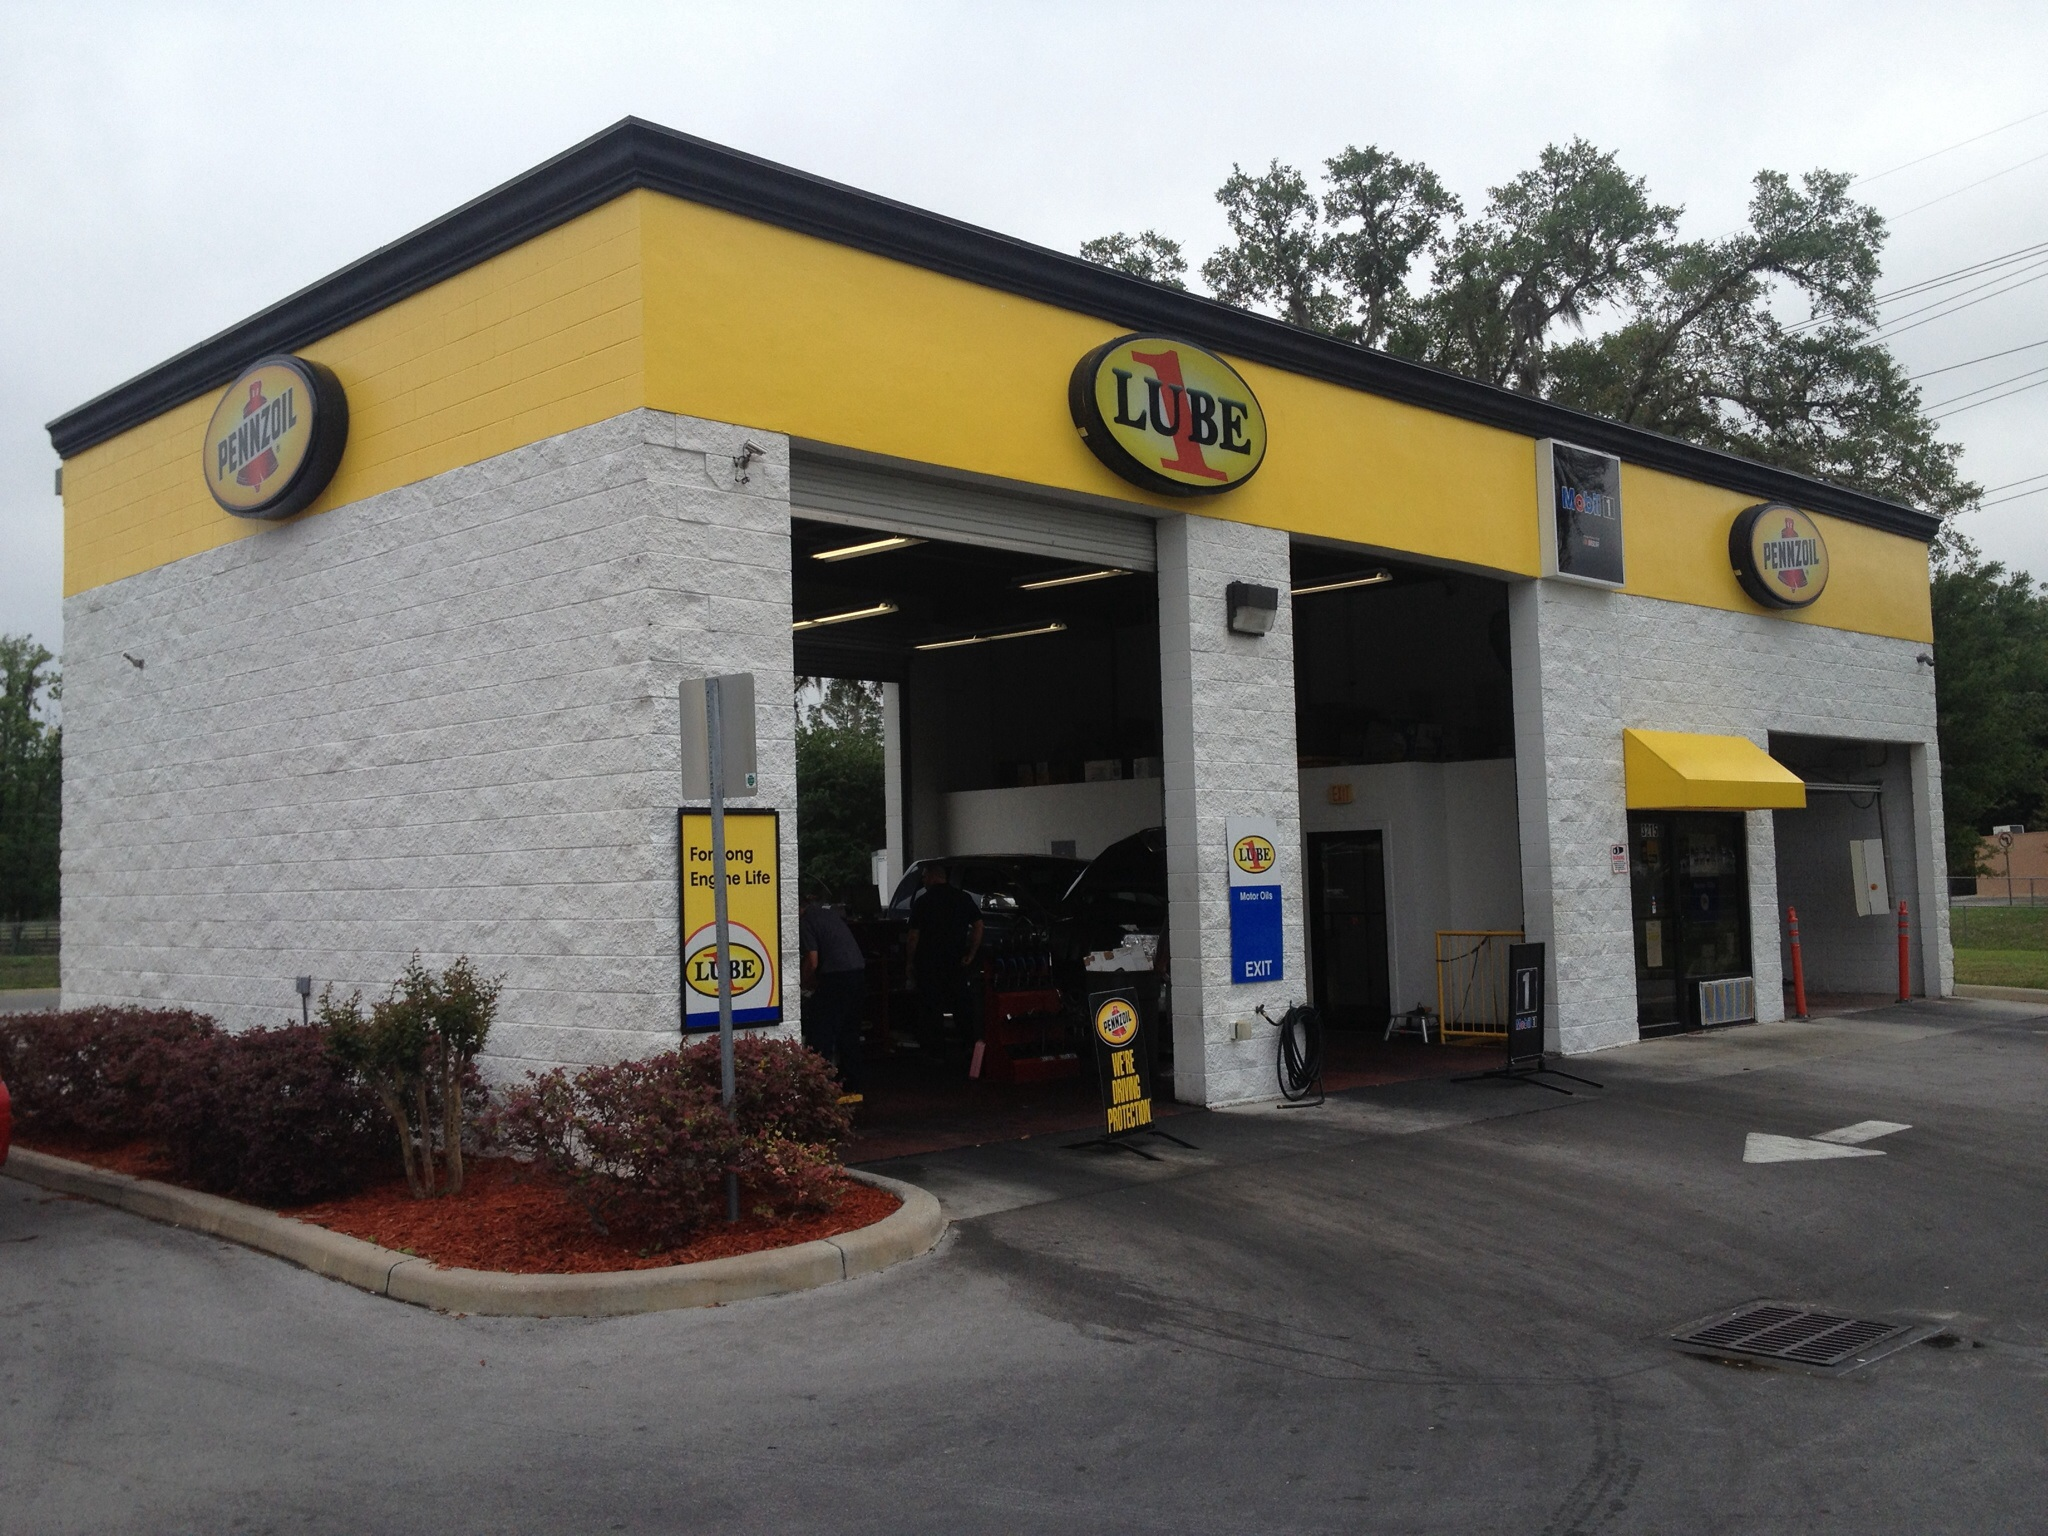 Lube 1 Ten Minute Oil Change 3215 N Pine Ave Ocala Fl